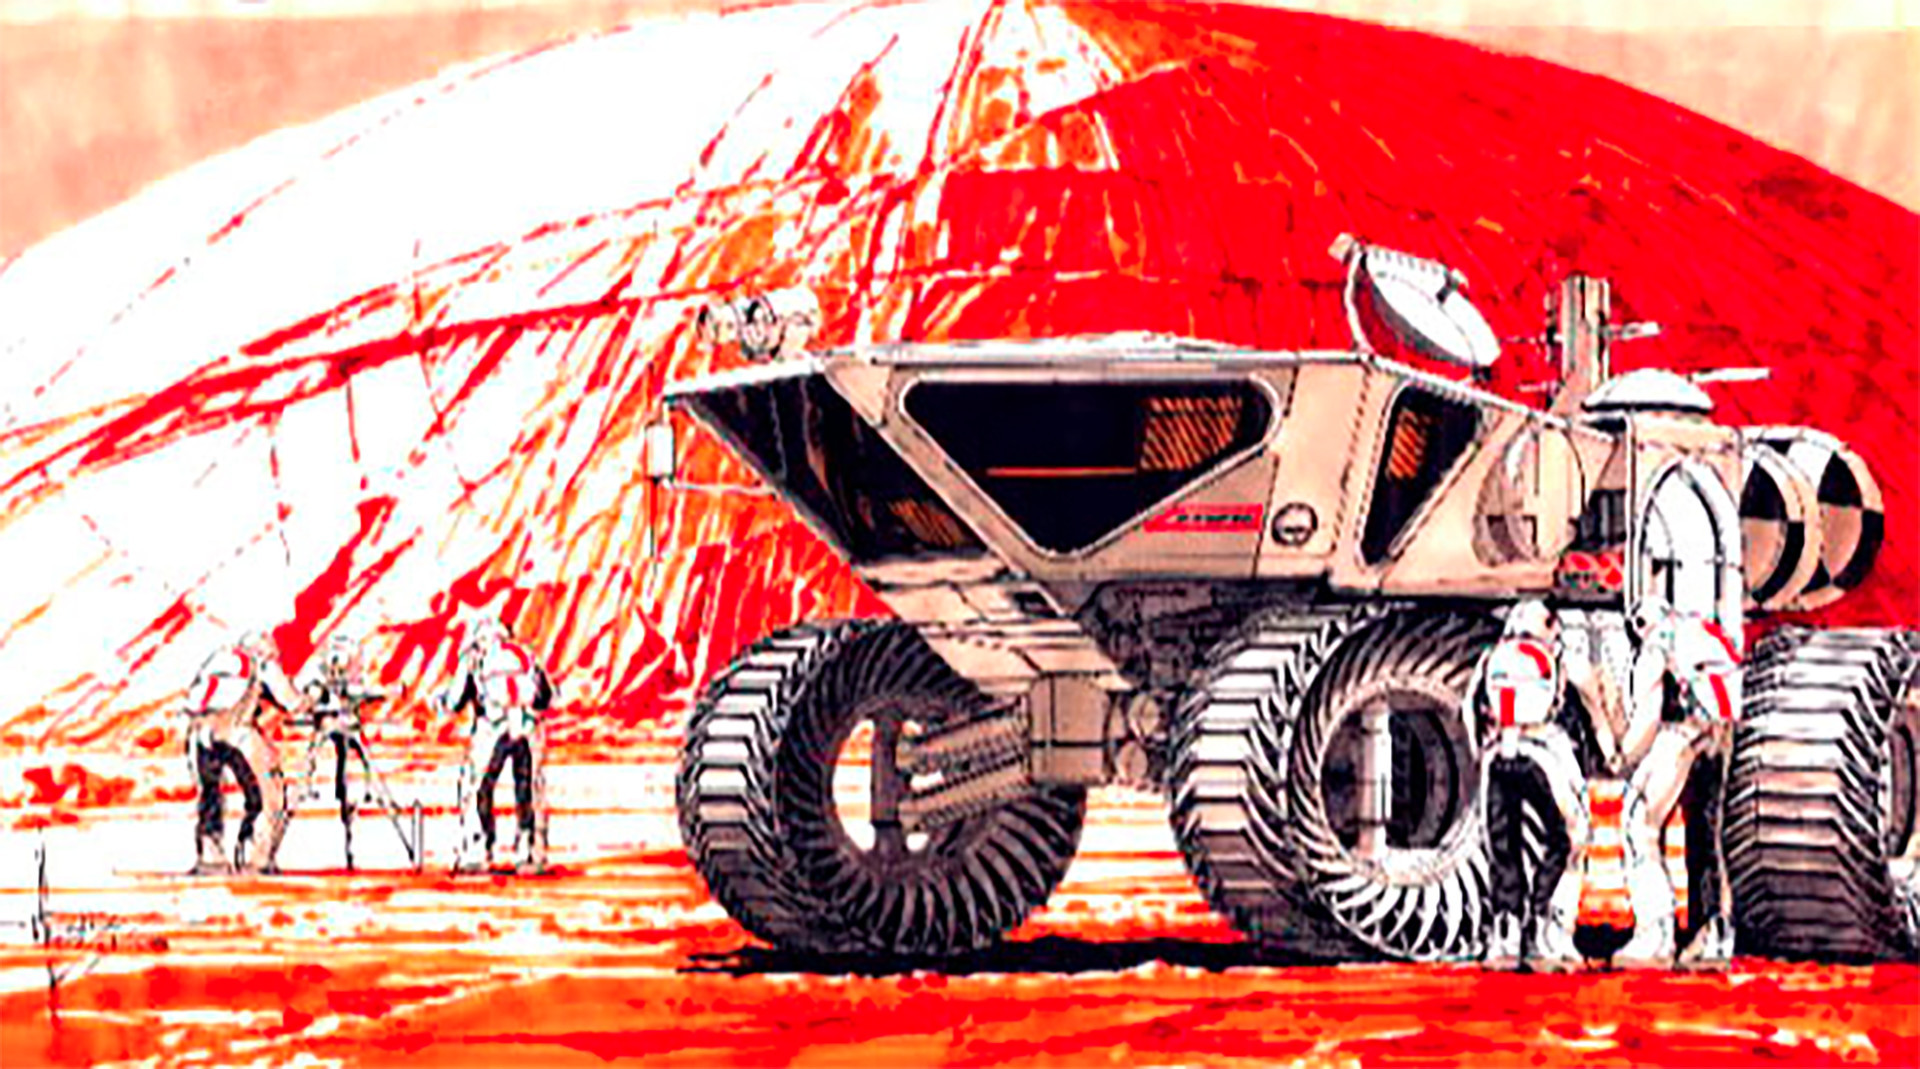 Original Syd Mead VEX concept for Nasa